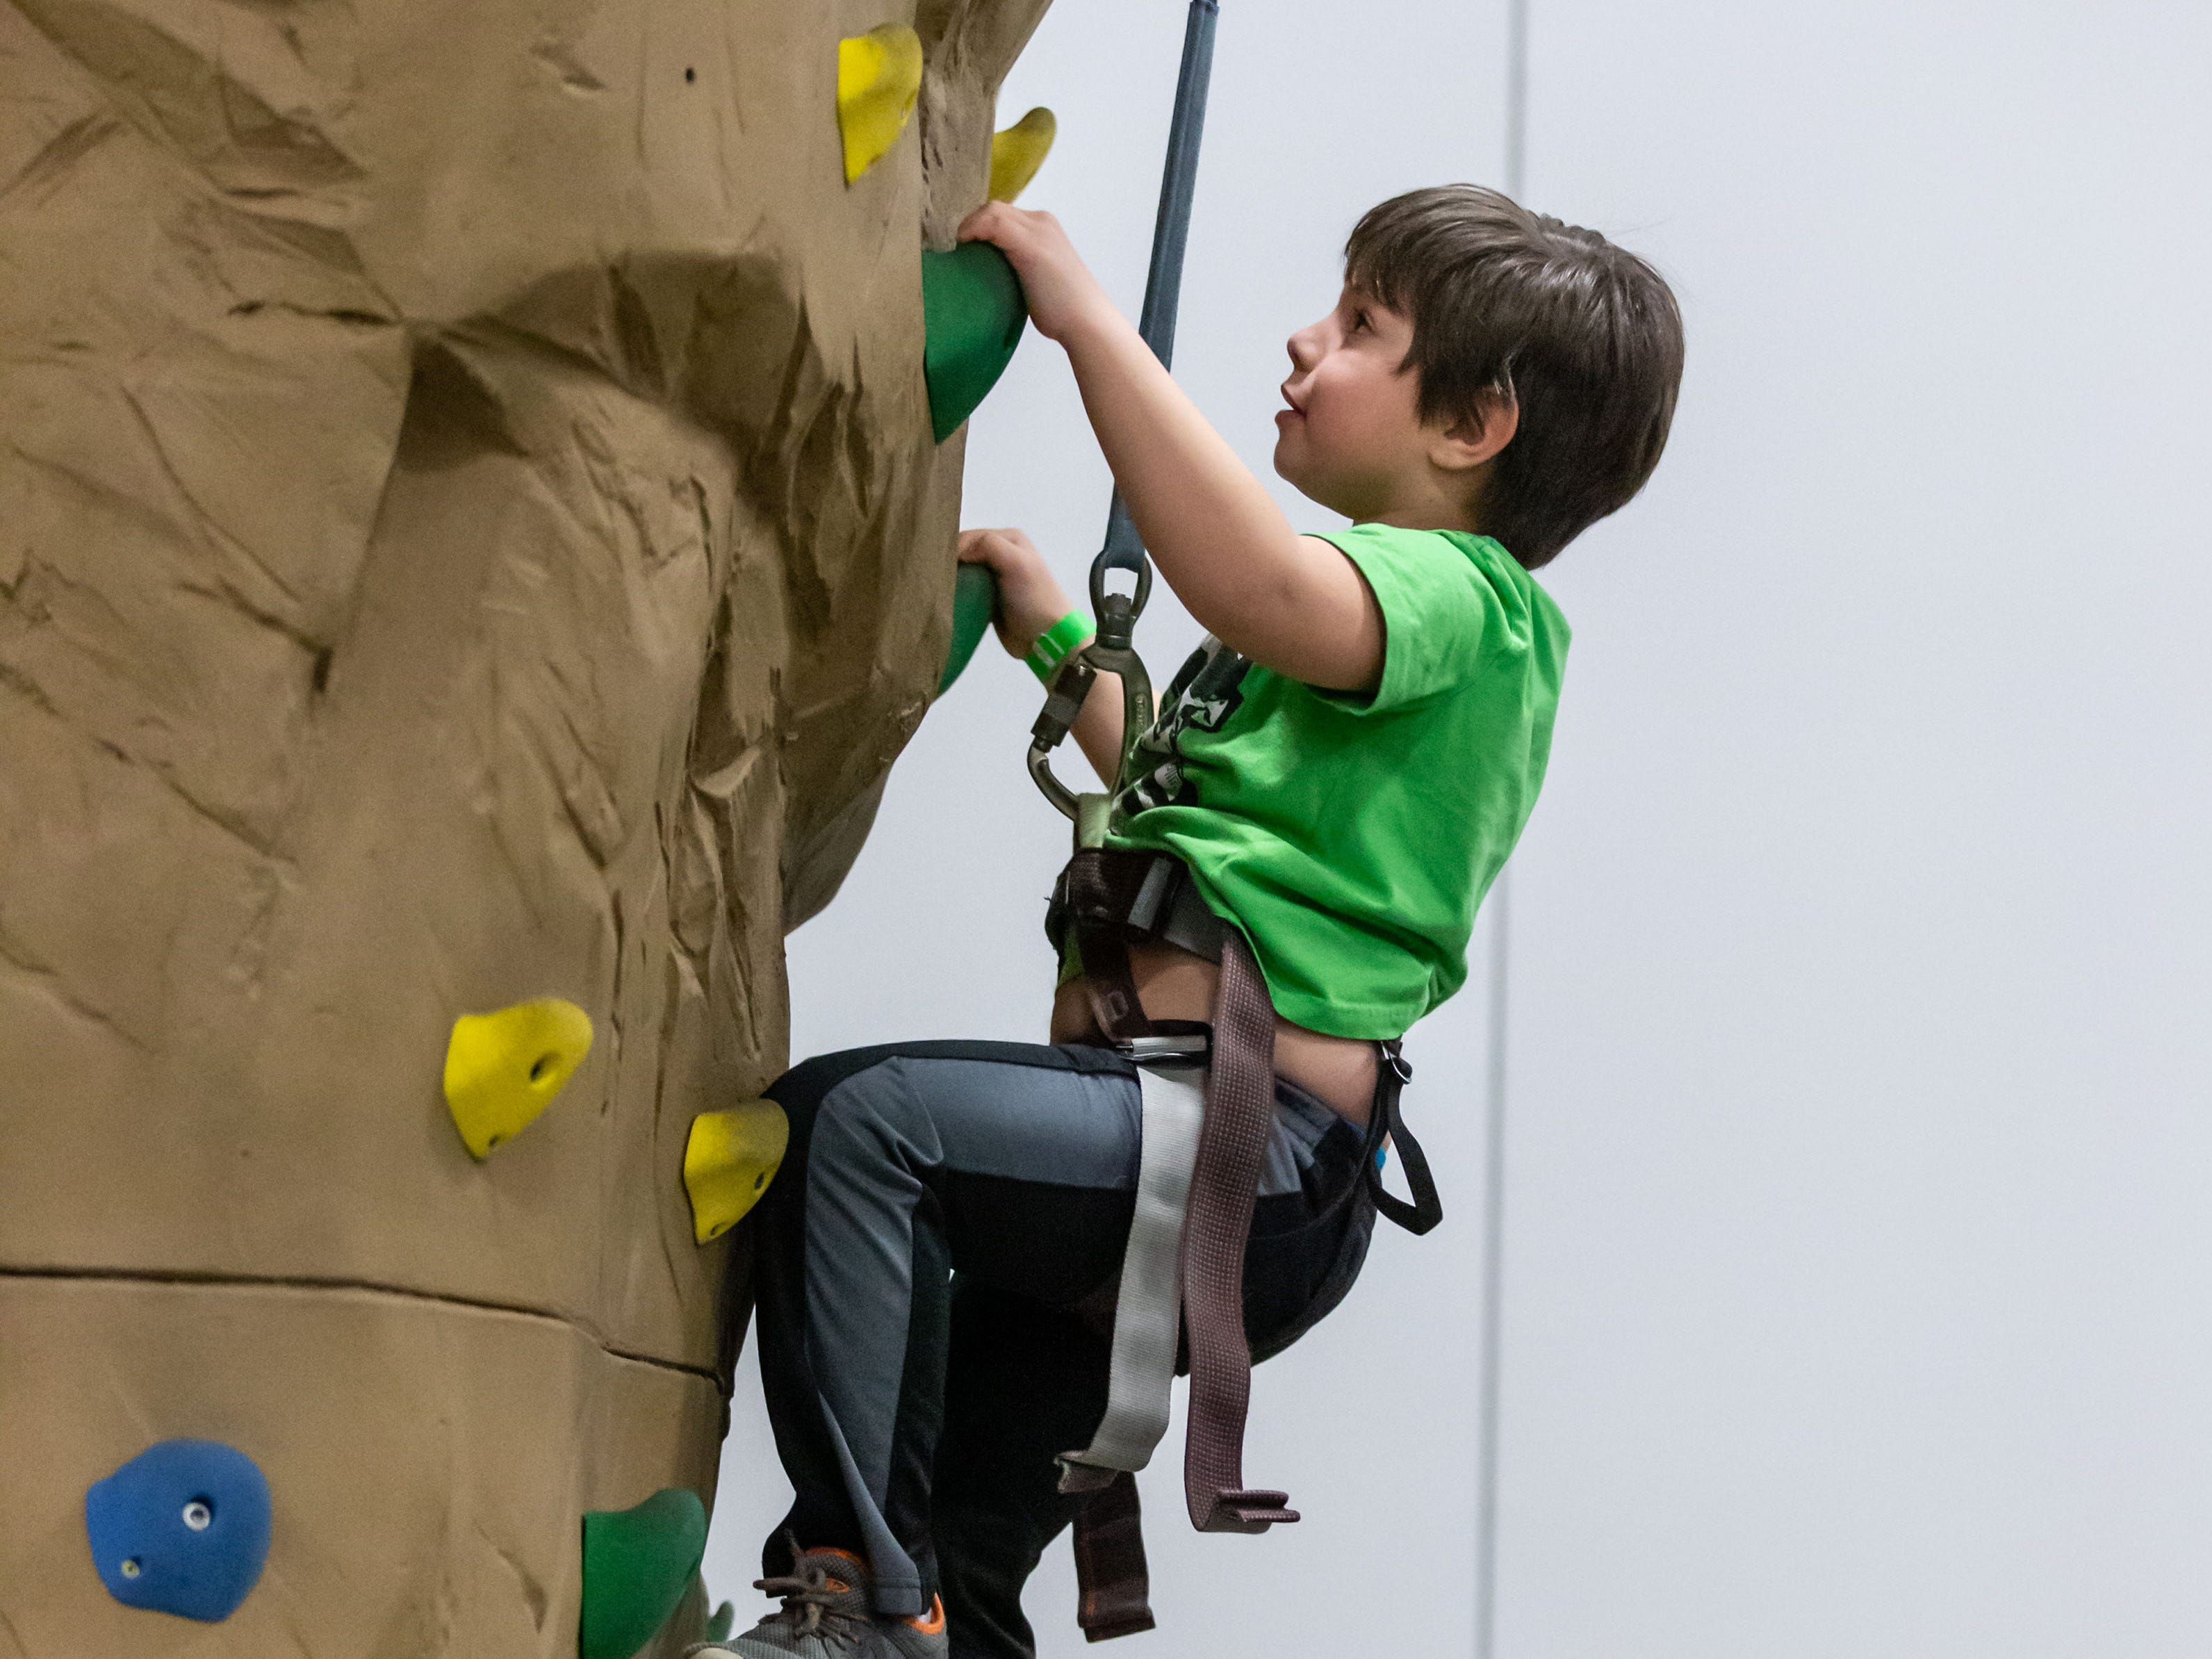 Six-year-old Christopher Moore of Racine makes his way up the Adventure Rock climbing wall during the Milwaukee Kids Expo at State Fair Park in West Allis on Sunday.